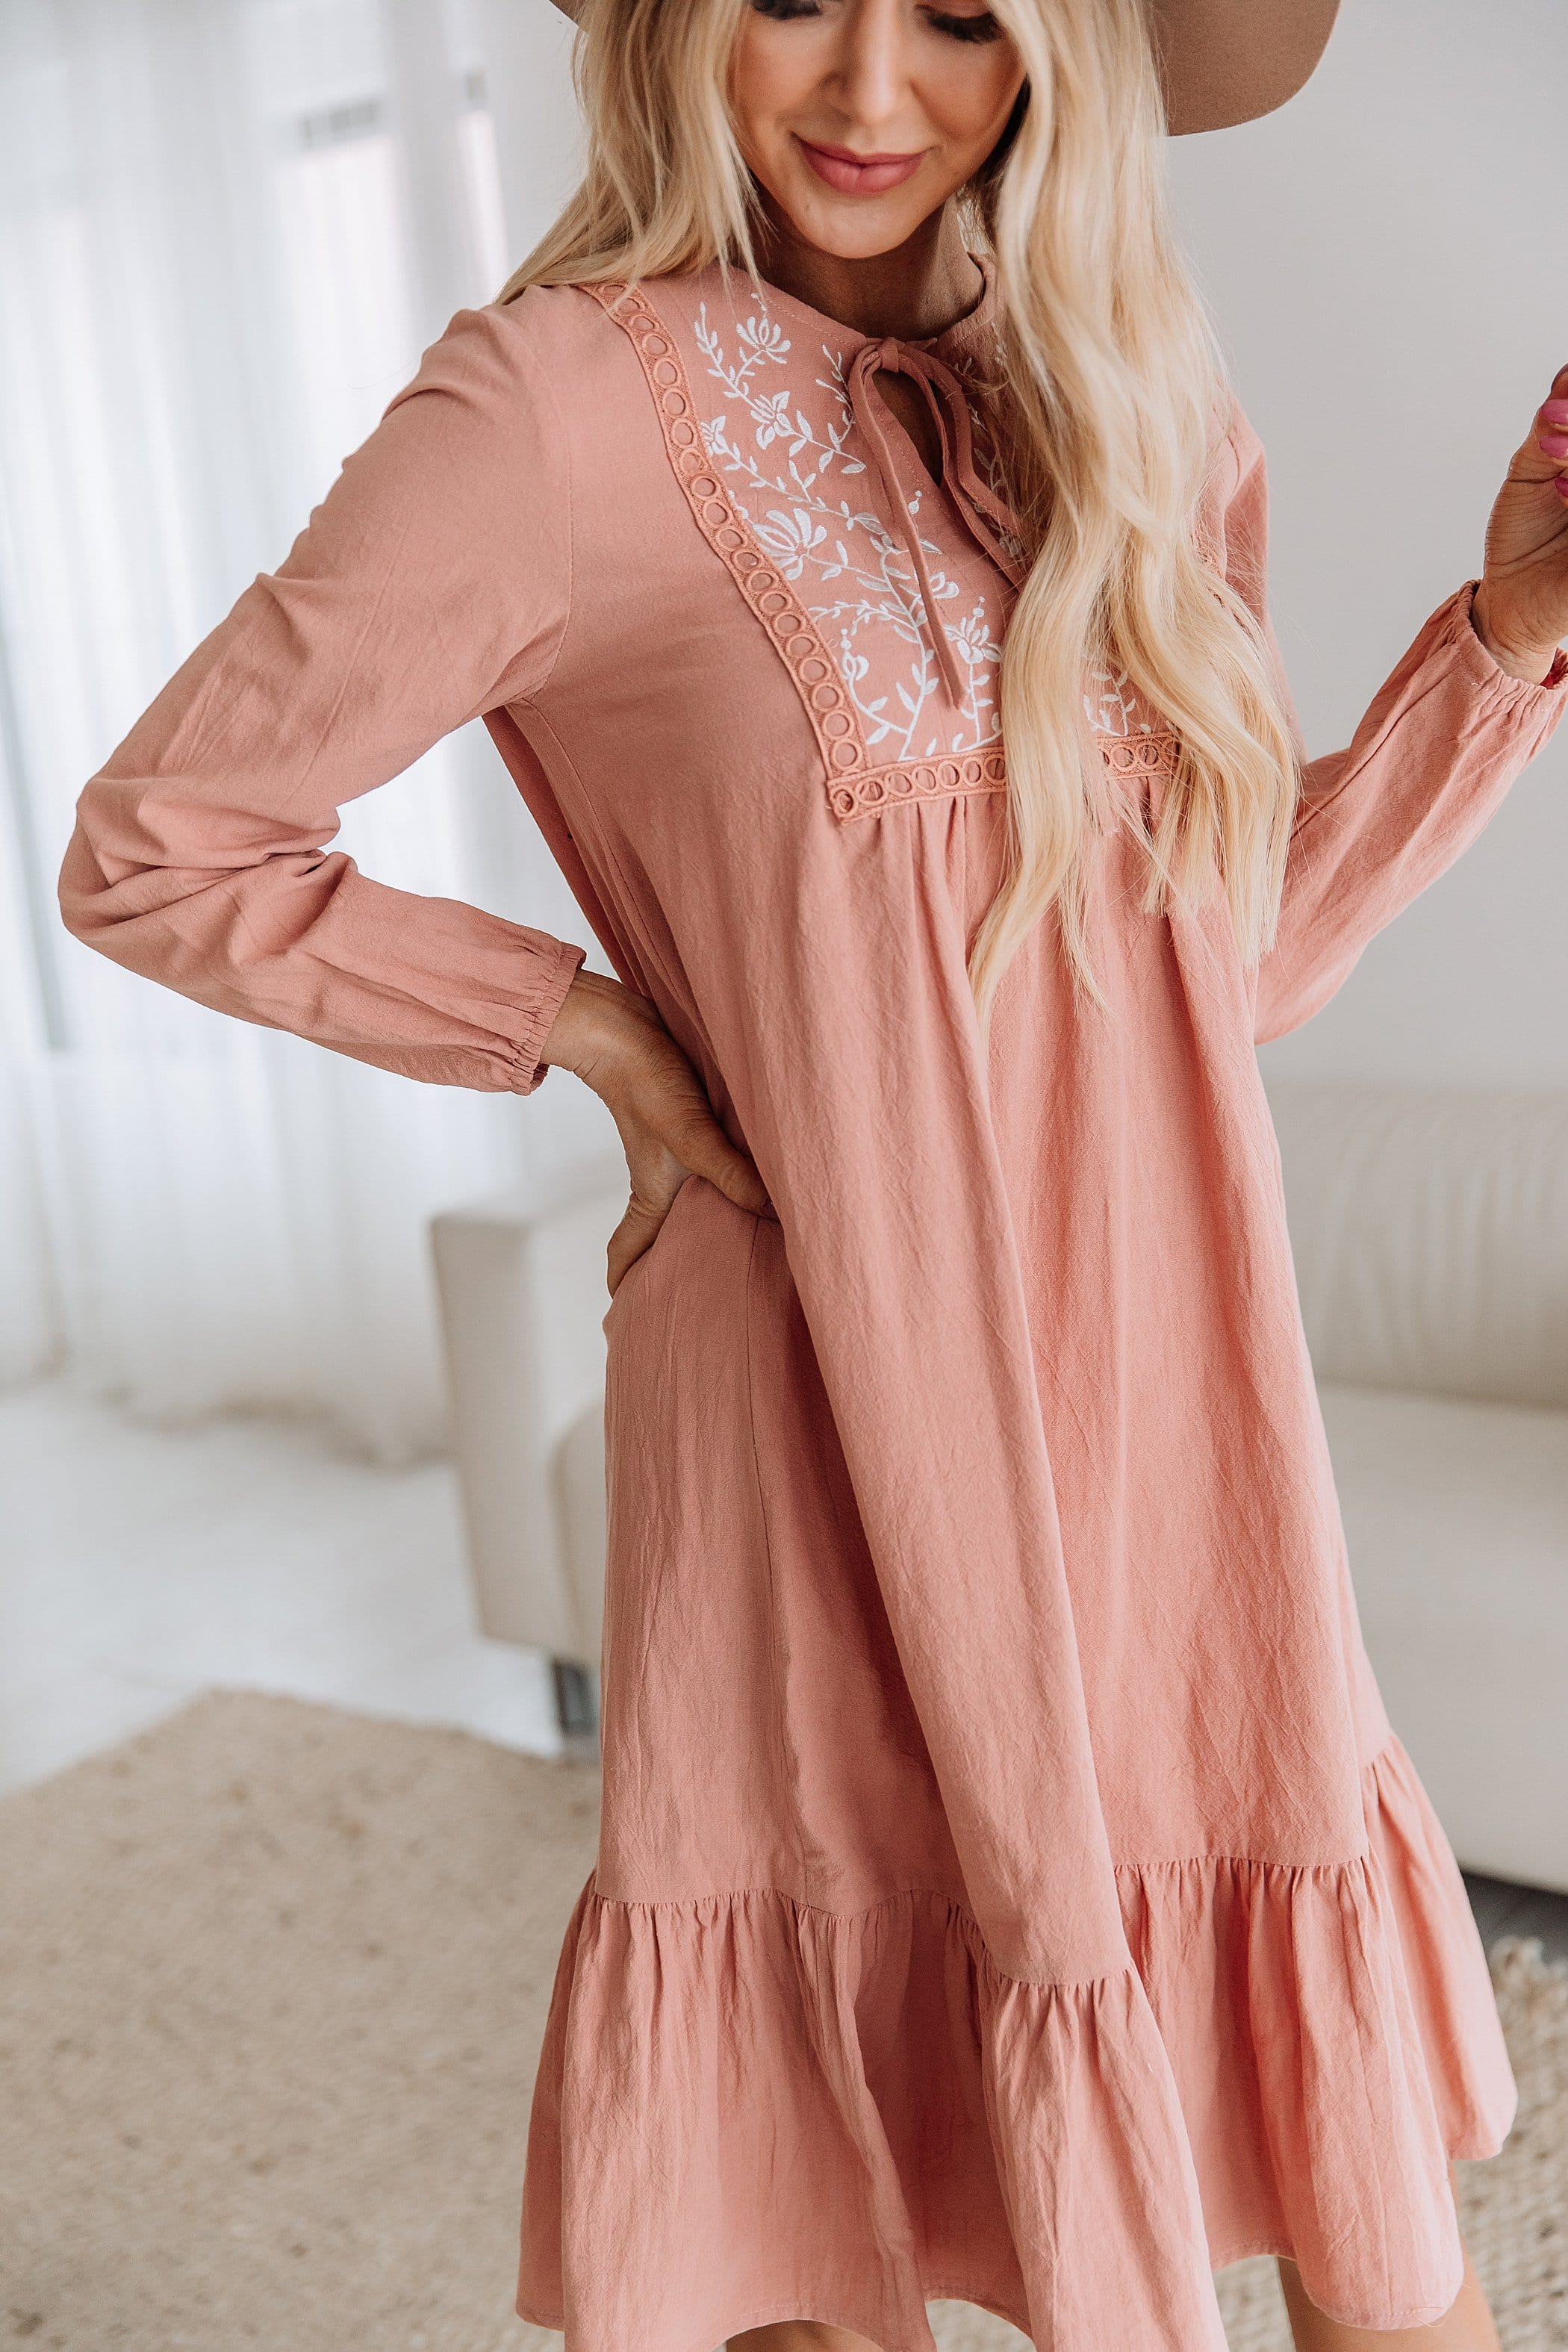 The Ashlynn Embroidered Dress in Rose